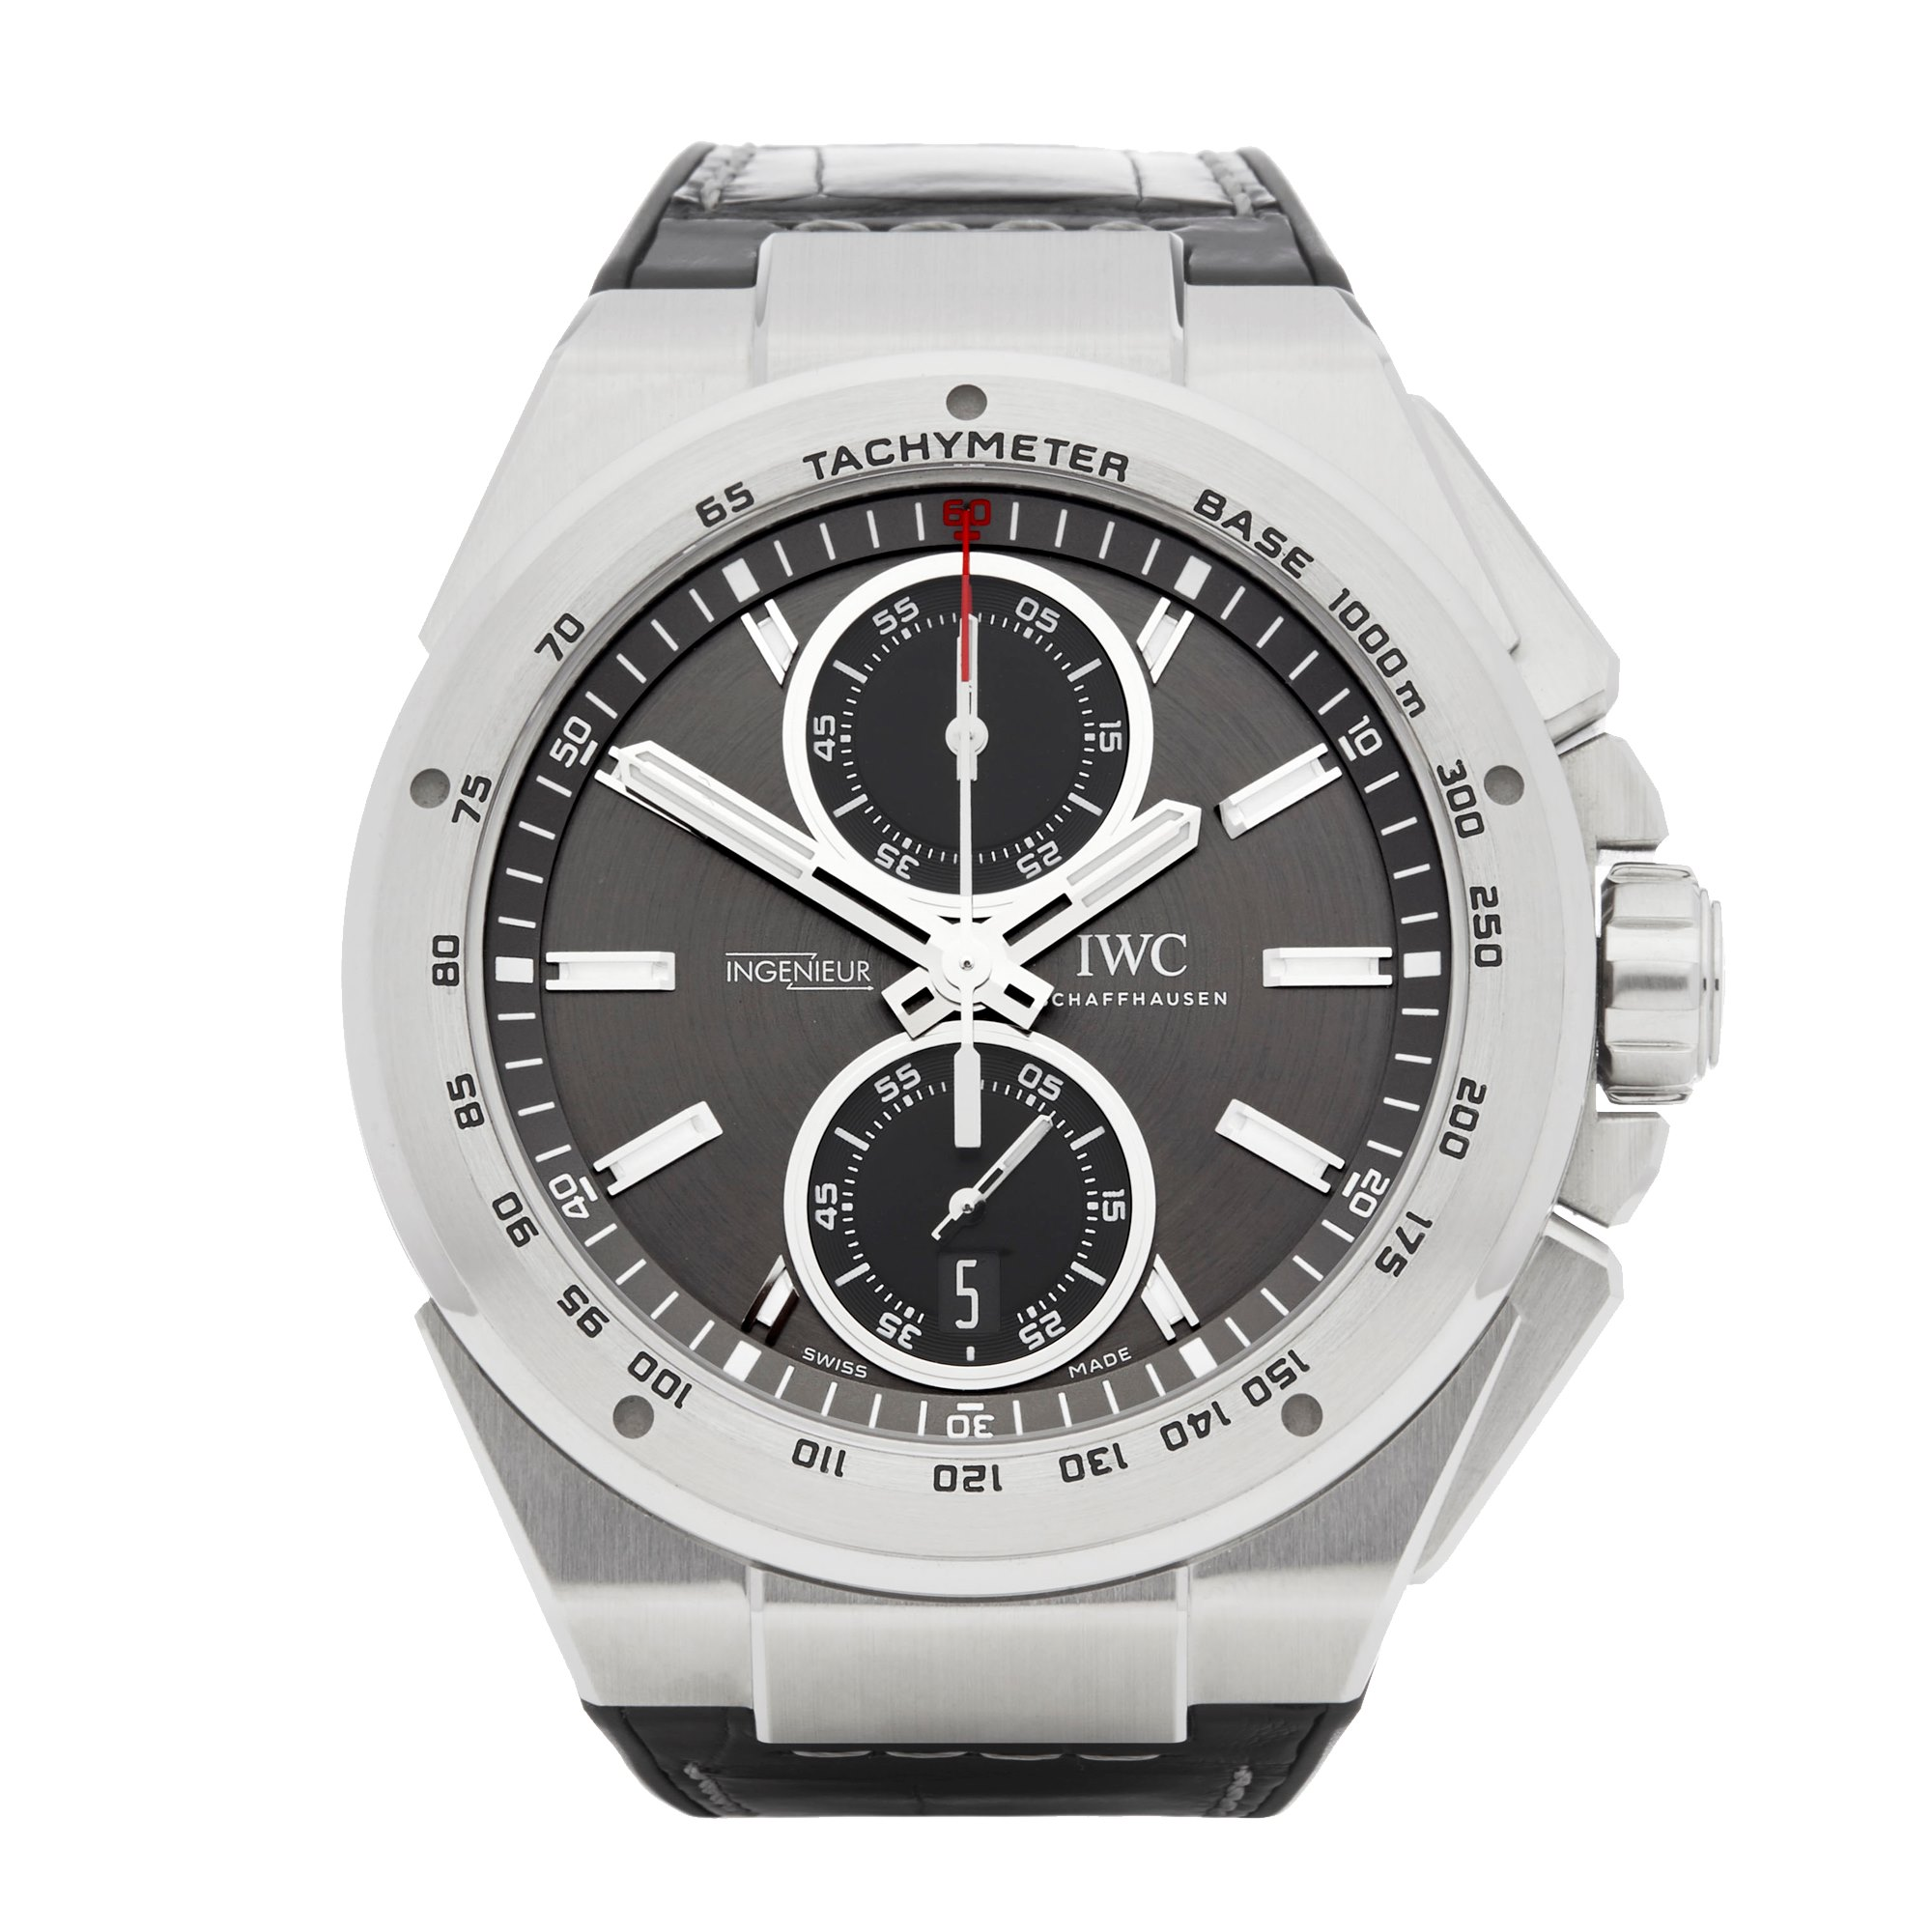 IWC Ingenieur Chronograph Stainless Steel 5197017